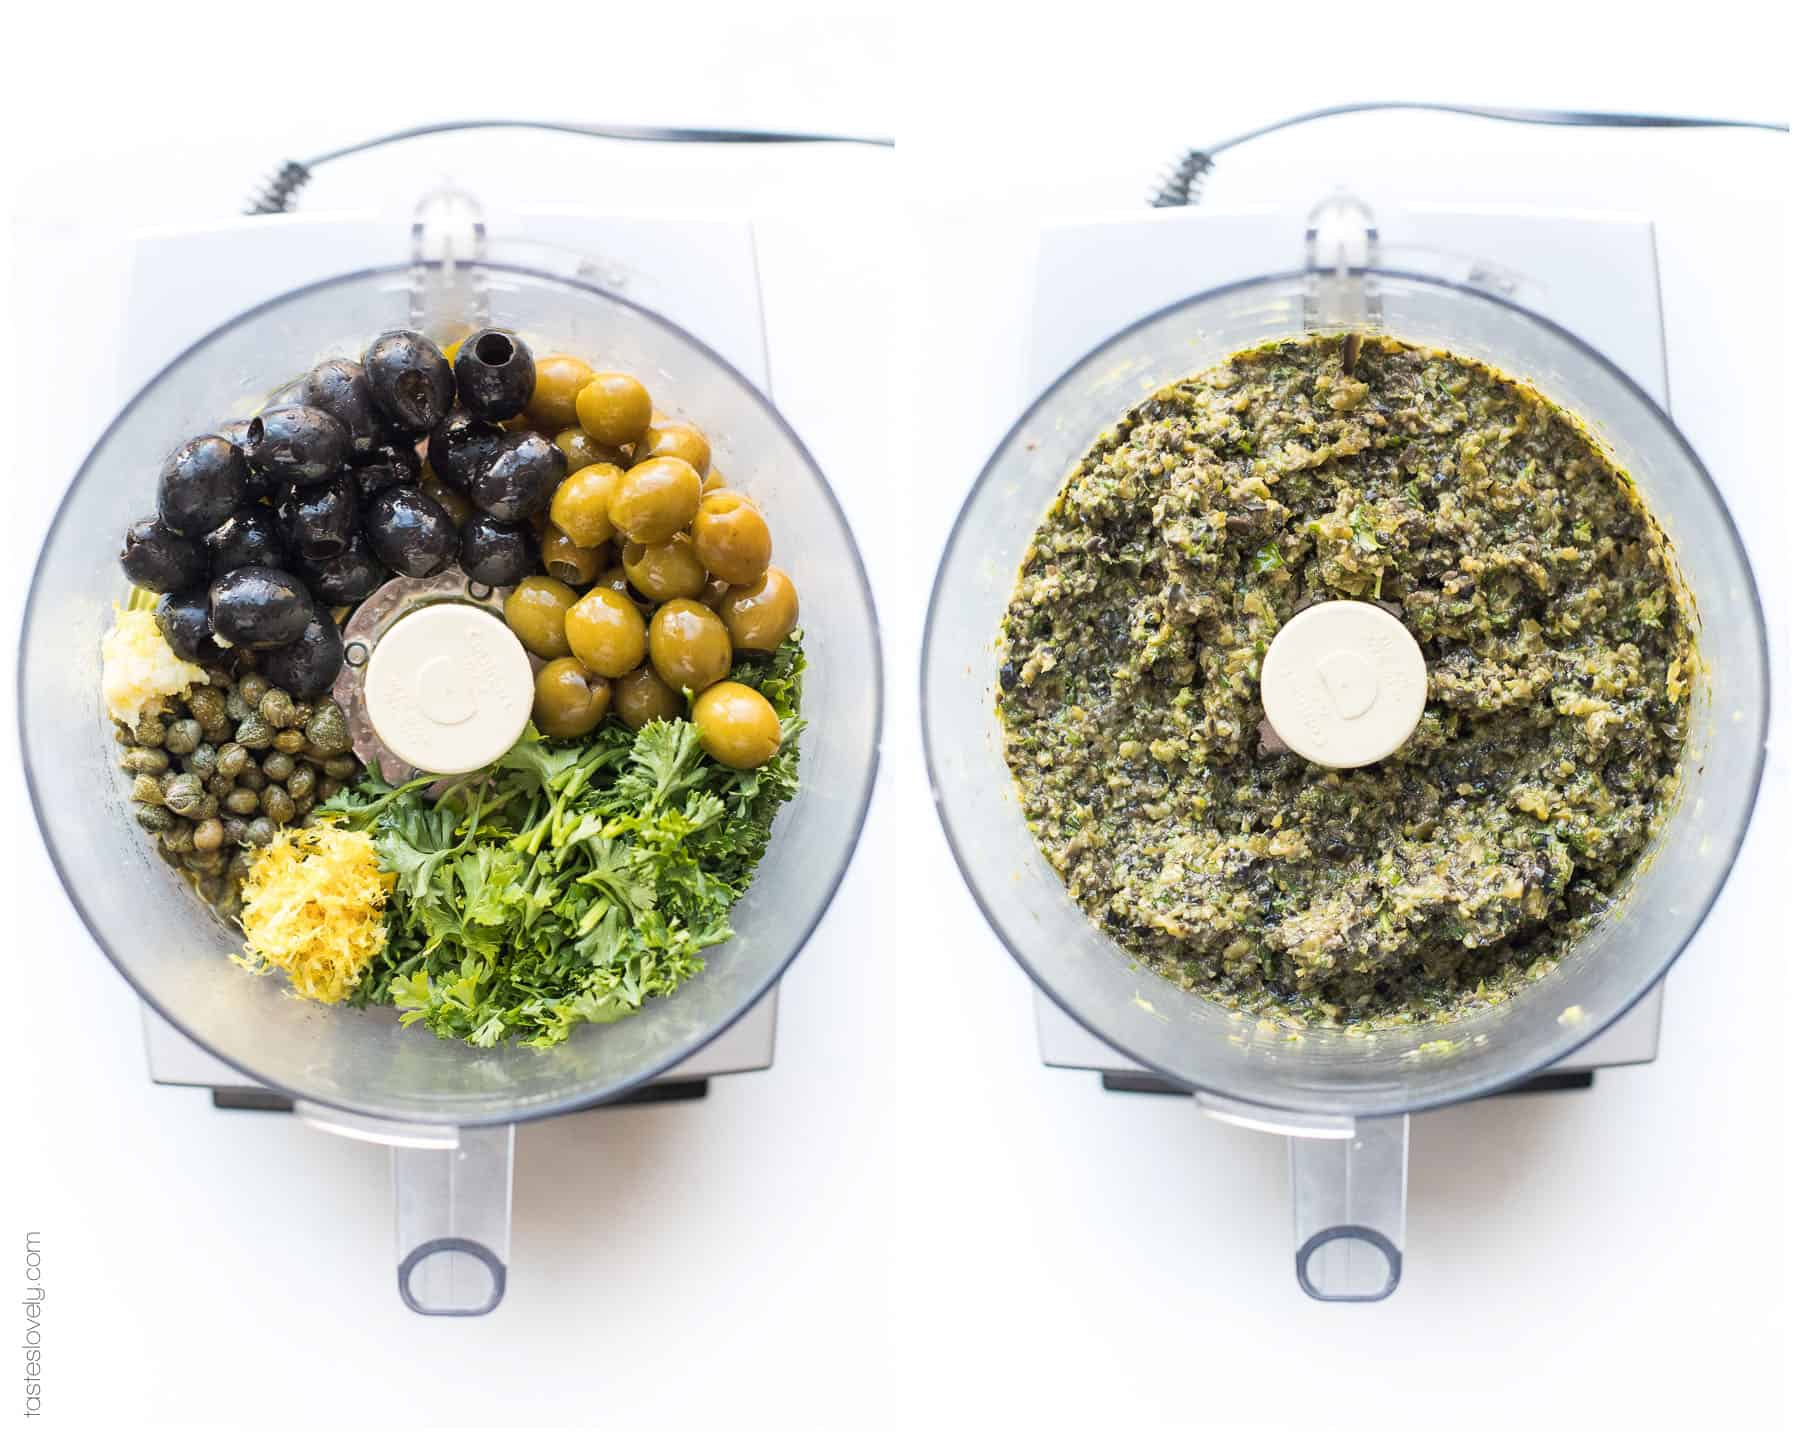 Steps of making olive tapenade in a food processor